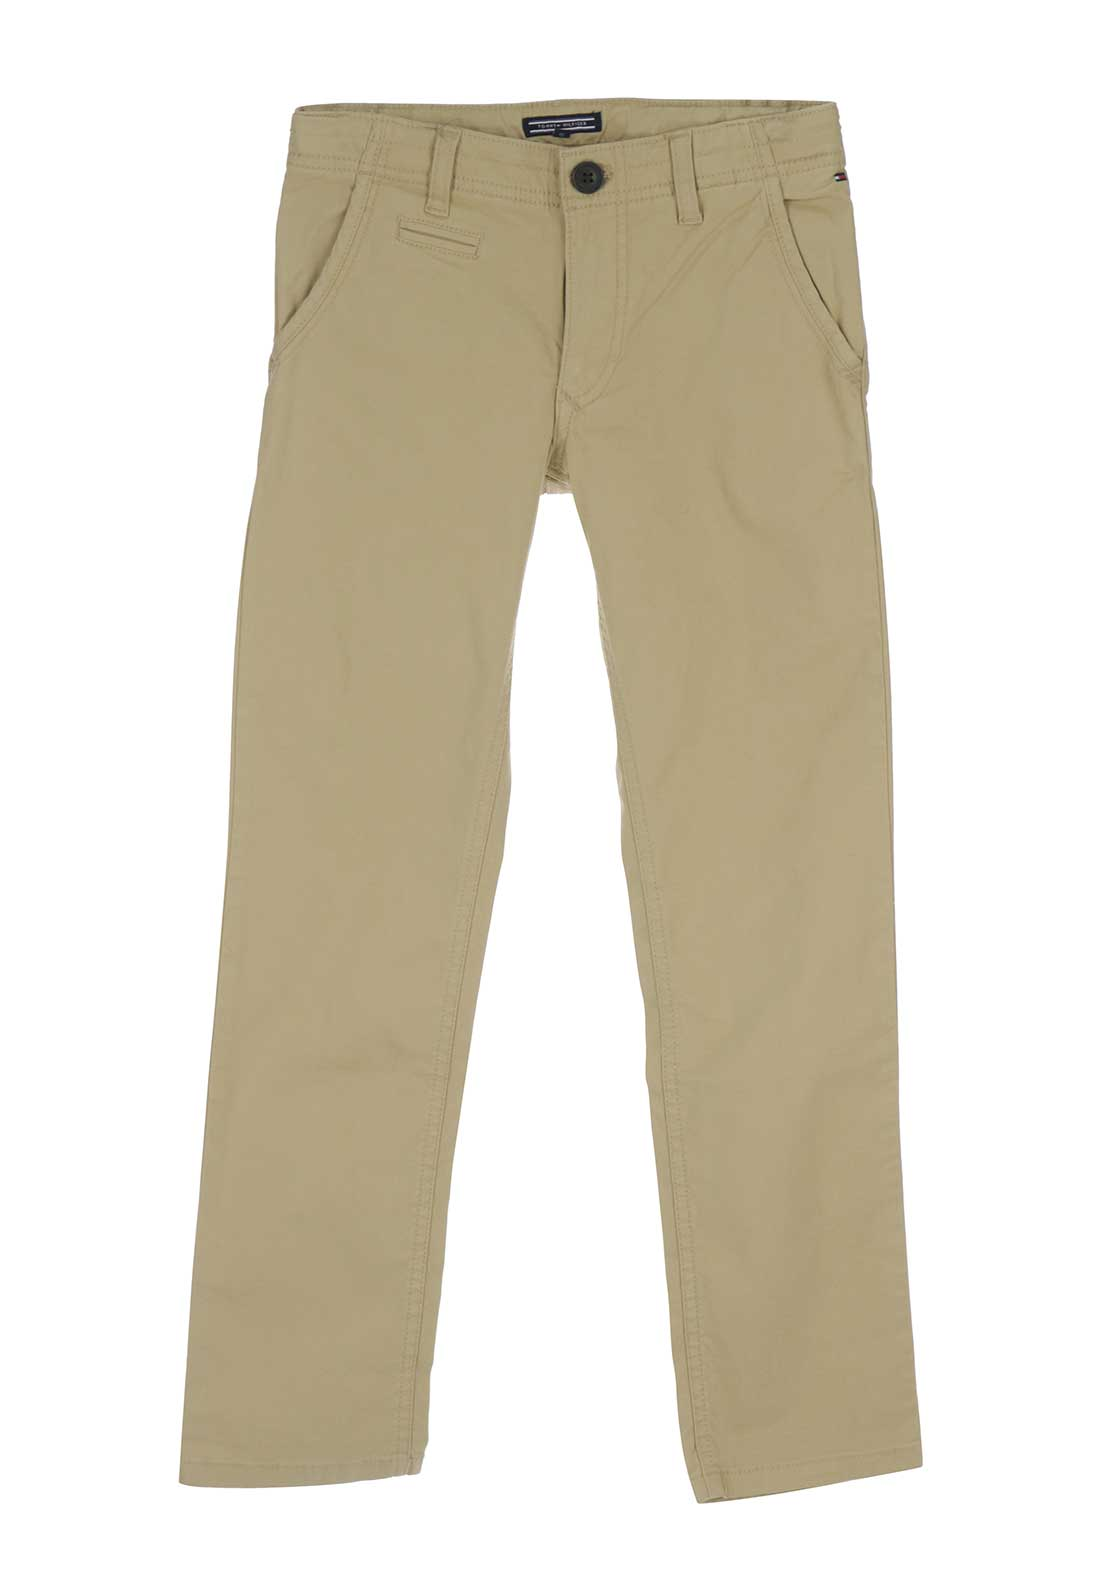 Tommy Hilfiger Boys Denton Chino Trousers, Beige